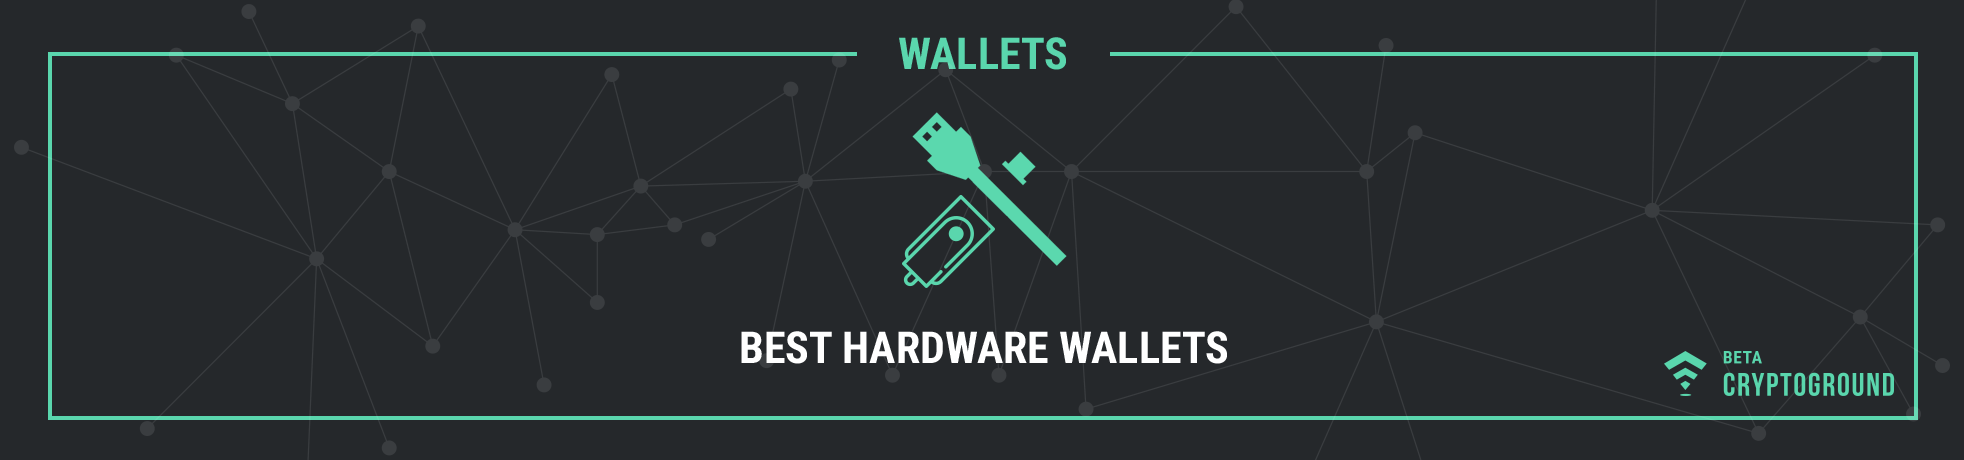 Best Hardware Wallets